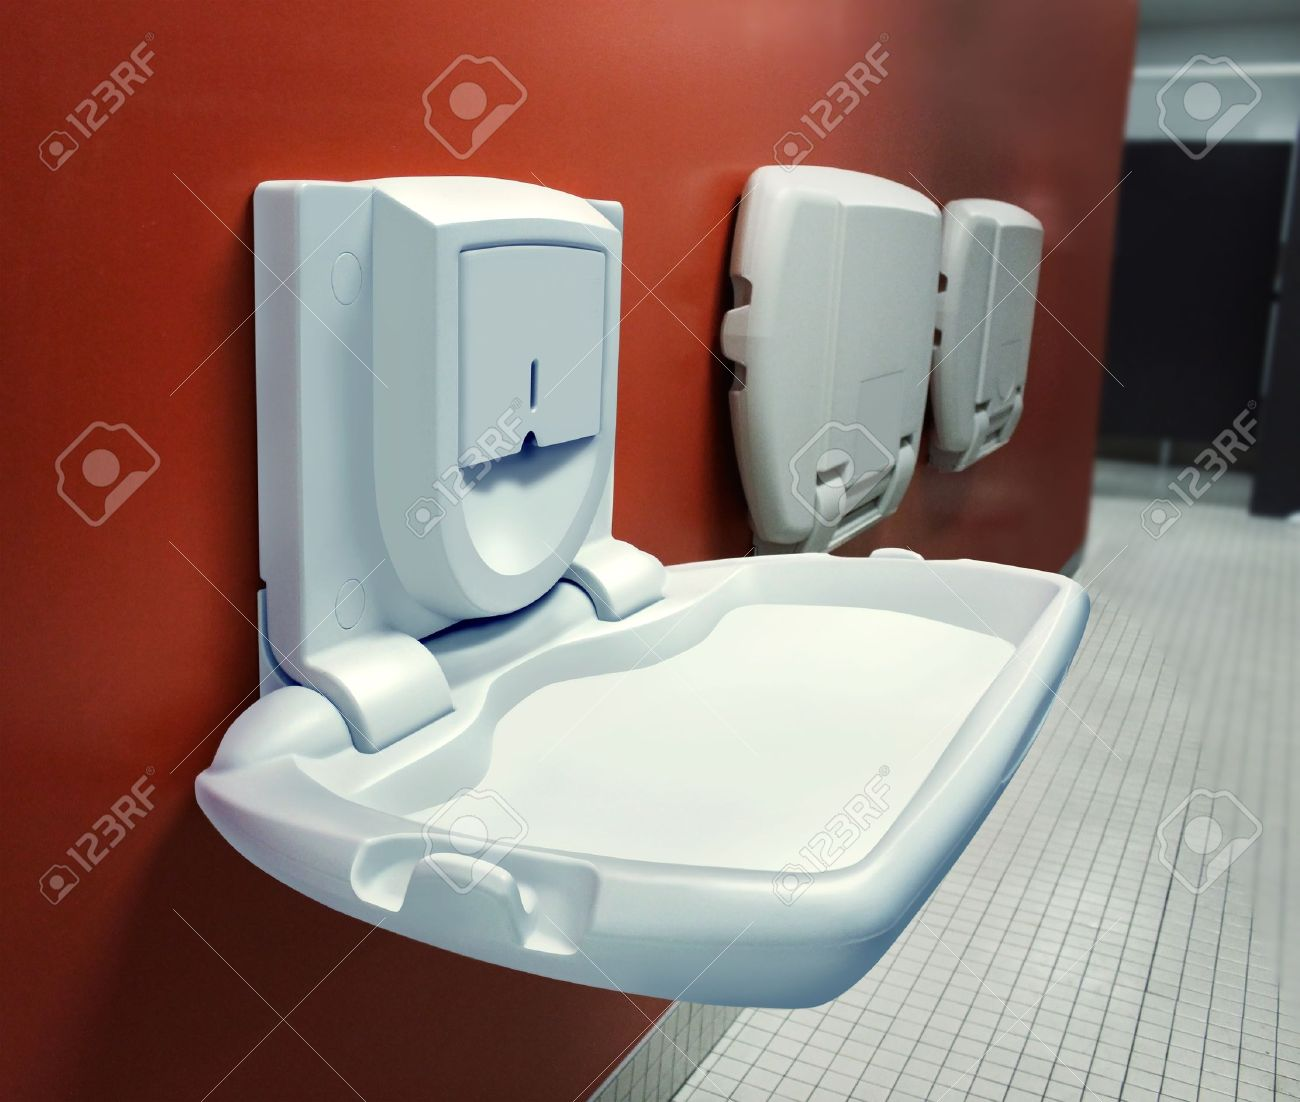 urban parenting with a public diaper changing table mounted on a wall stock photo